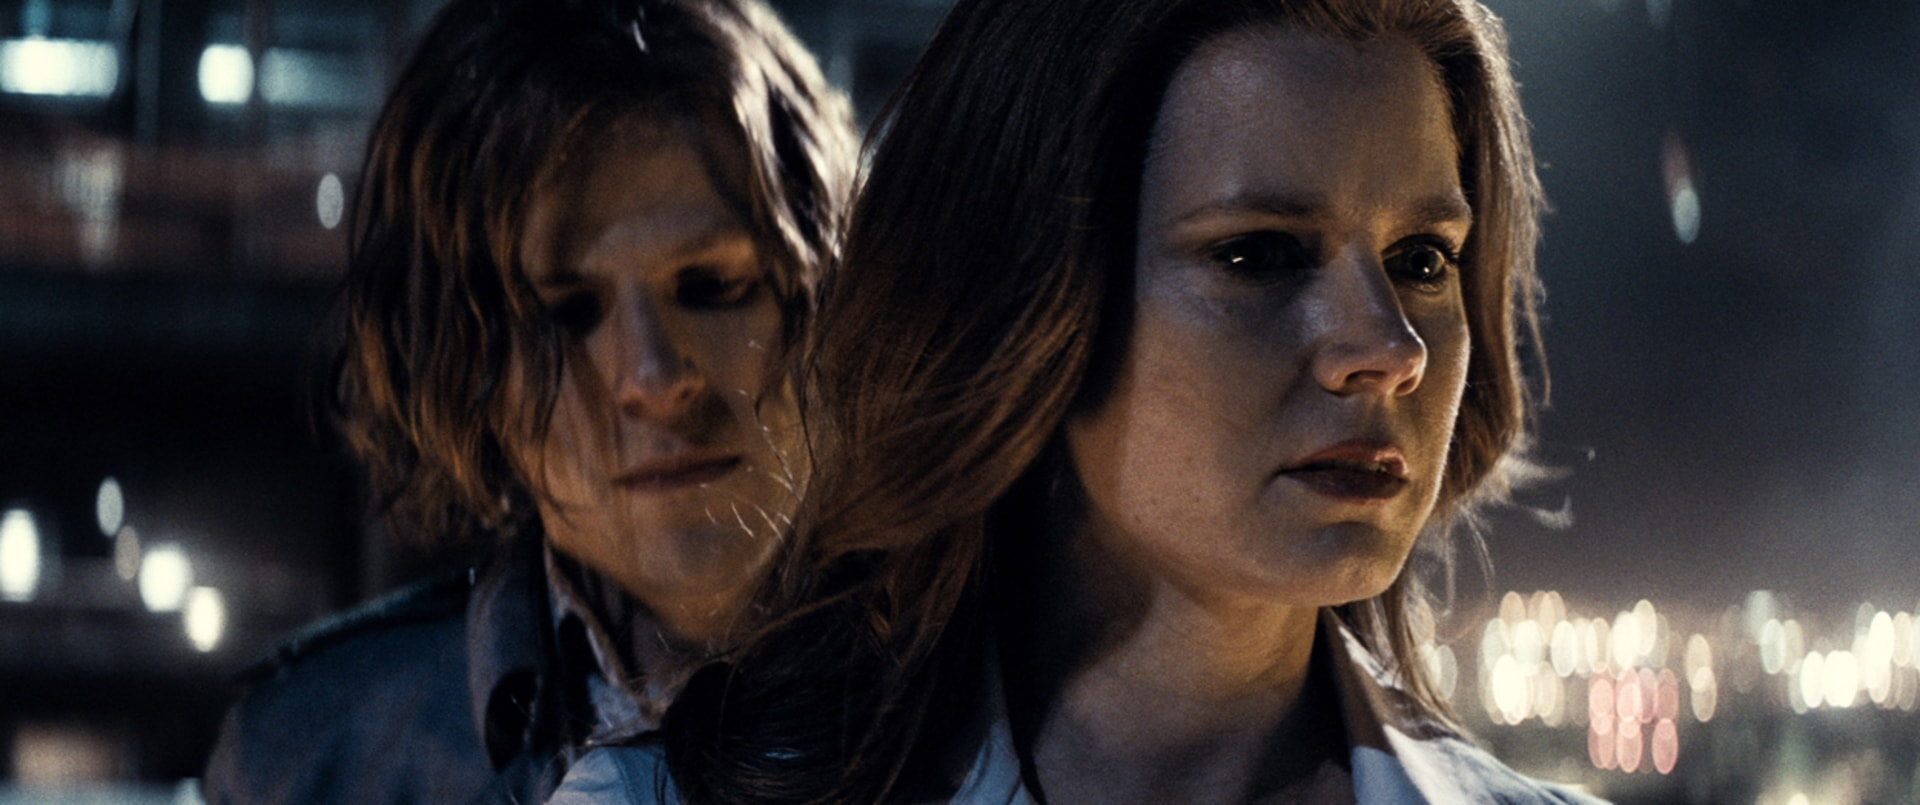 Close-up of JESSE EISENBERG as Lex Luthor and AMY ADAMS as Lois Lane